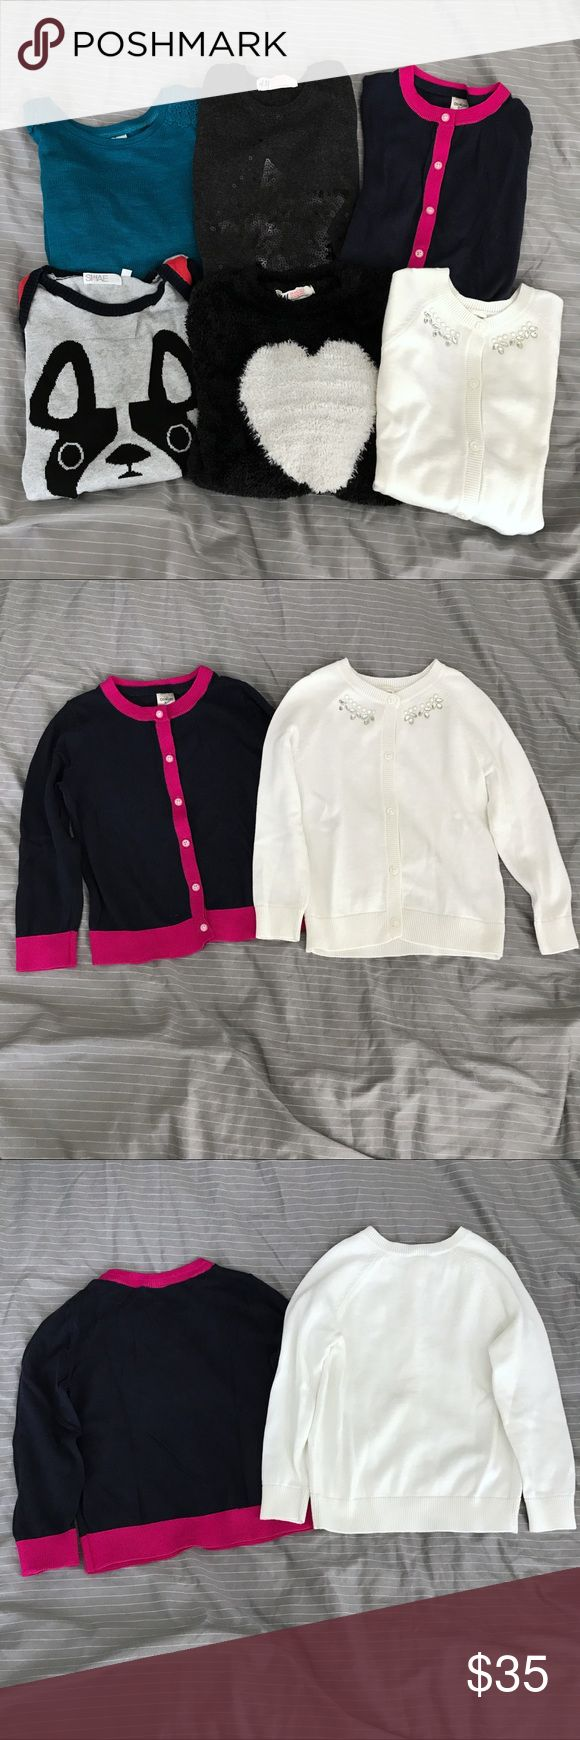 6x Toddler Girl Sweaters (3T) All size 3T or equivalent: 1. 2x H&M charcoal gray sweater w/ sequin star + black furry sweater w/ white heart (both size 2-4T)  2. 2x OshKosh Cardigans- navy w/ pink & ivory w/ jeweled neckline (this one was washed but never worn) 3. Shae- French bulldog intarsia gray sweater (small stain on front near bottom, tag is detached on one side, size 2T but runs large) 4. Old Navy- lightweight teal swing sweater, lace details at shoulders OshKosh B'gosh Shirts & Tops…